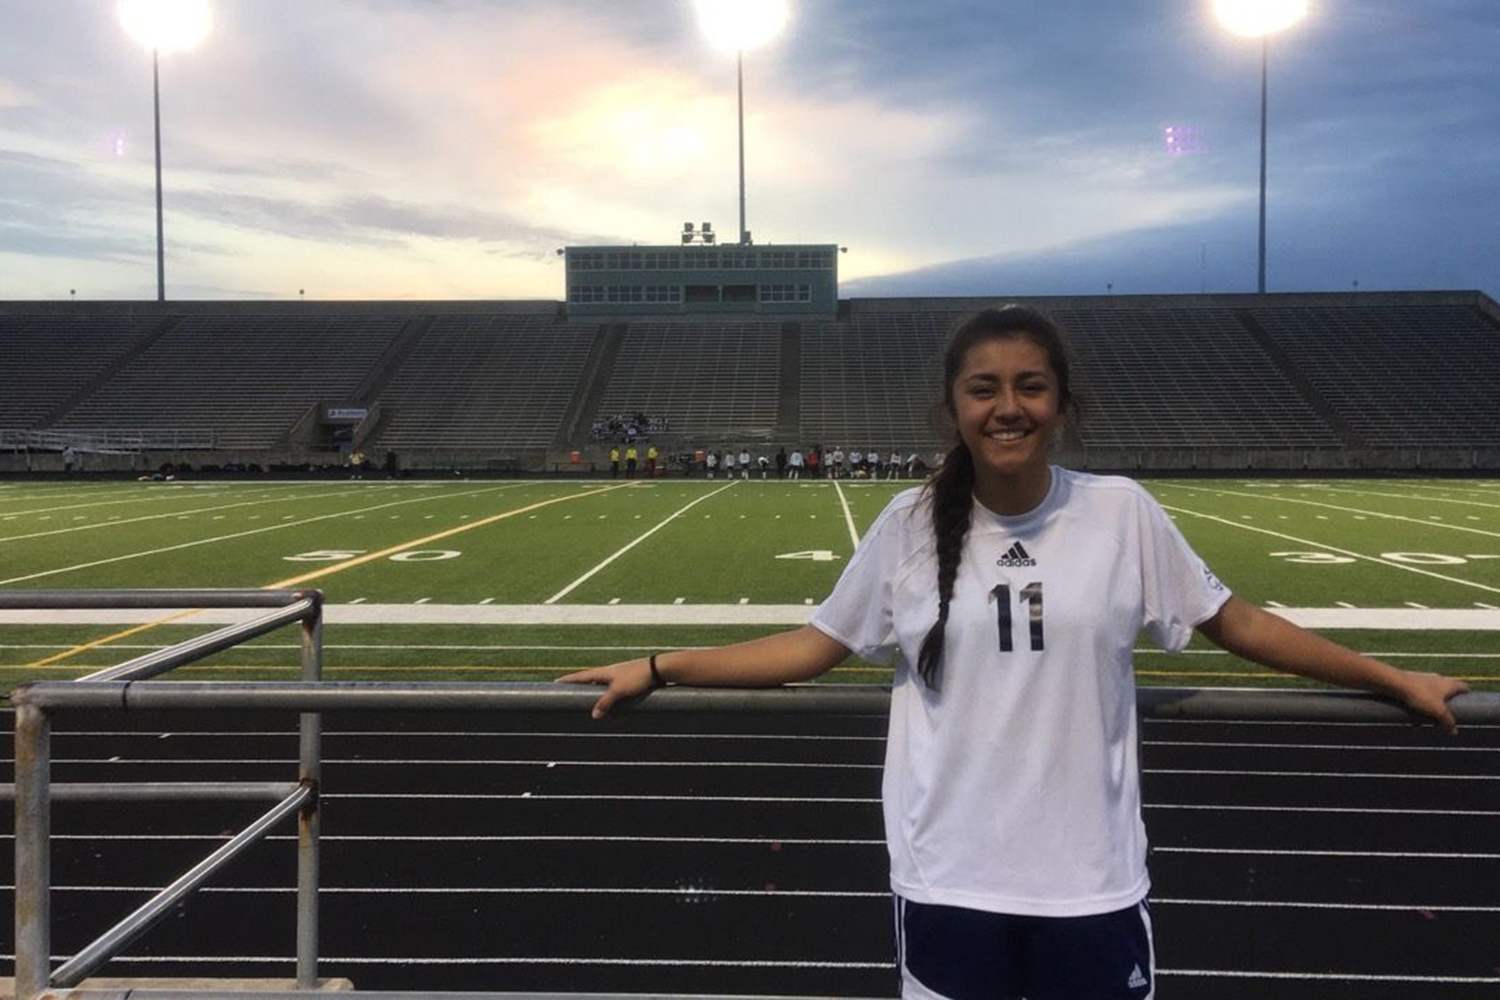 Freshman Paula Palacios poses at Burger Stadium before one of her soccer games. She is raising money for a surgery